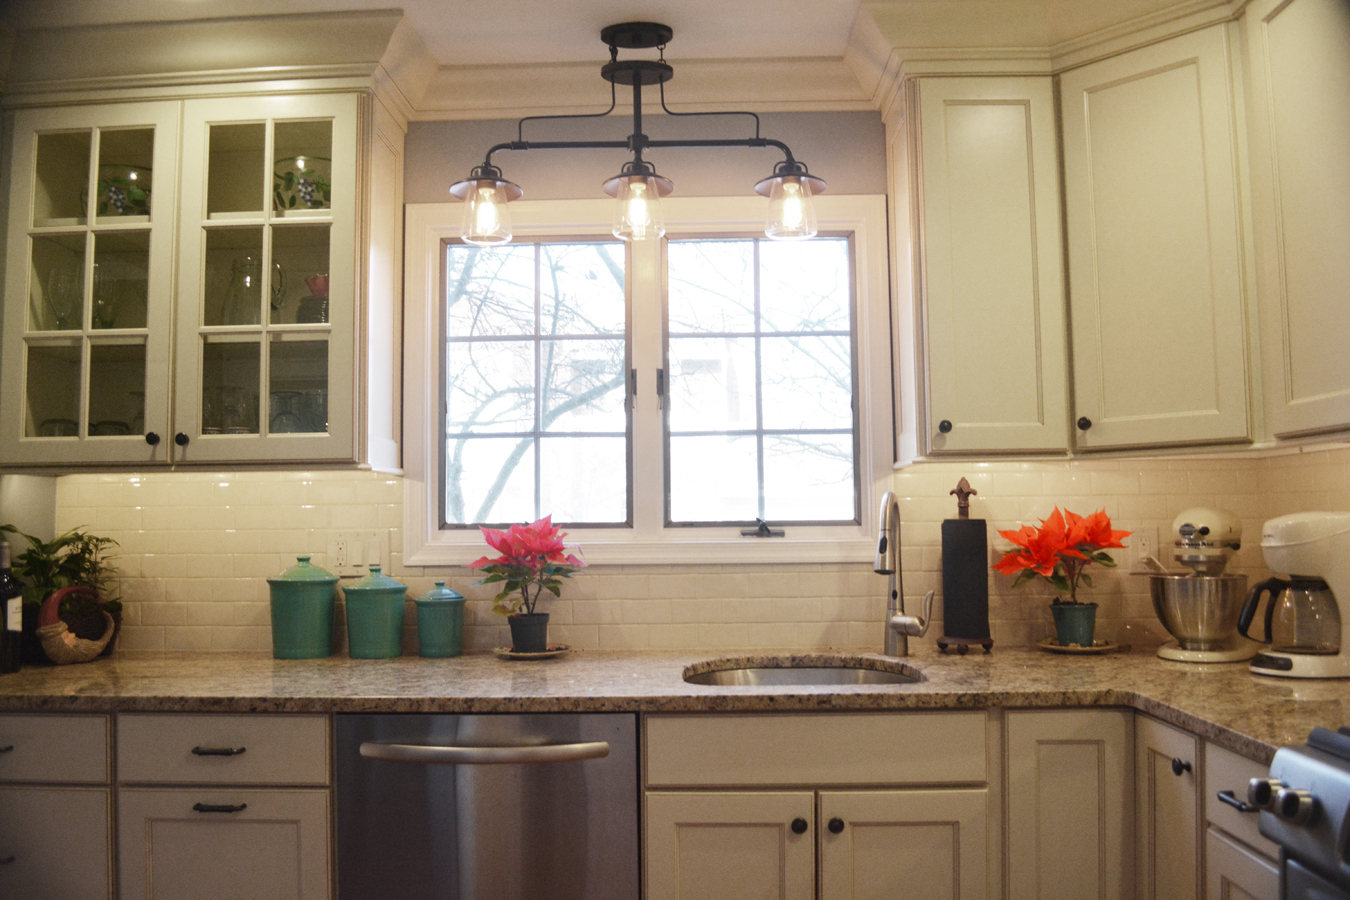 Hopewell Traditinal Kitchen Remodel optimized.jpg